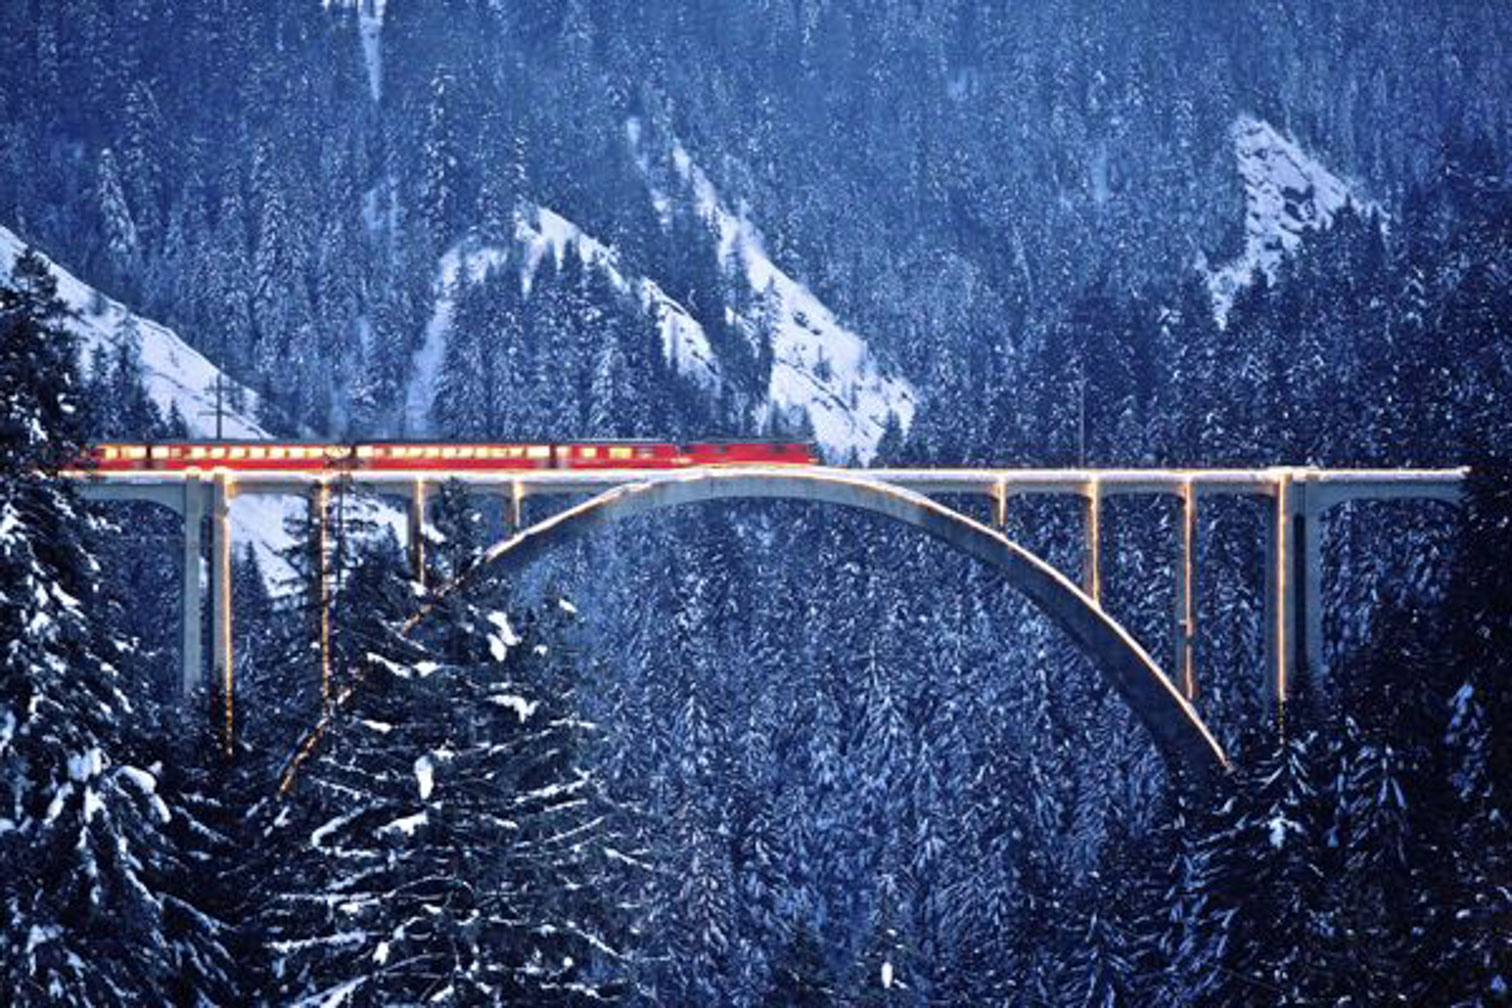 The Bernina Express at dusk. Nothing beats a visit to the snug, warmly lit dining car as stars twinkle in the darkening sky.